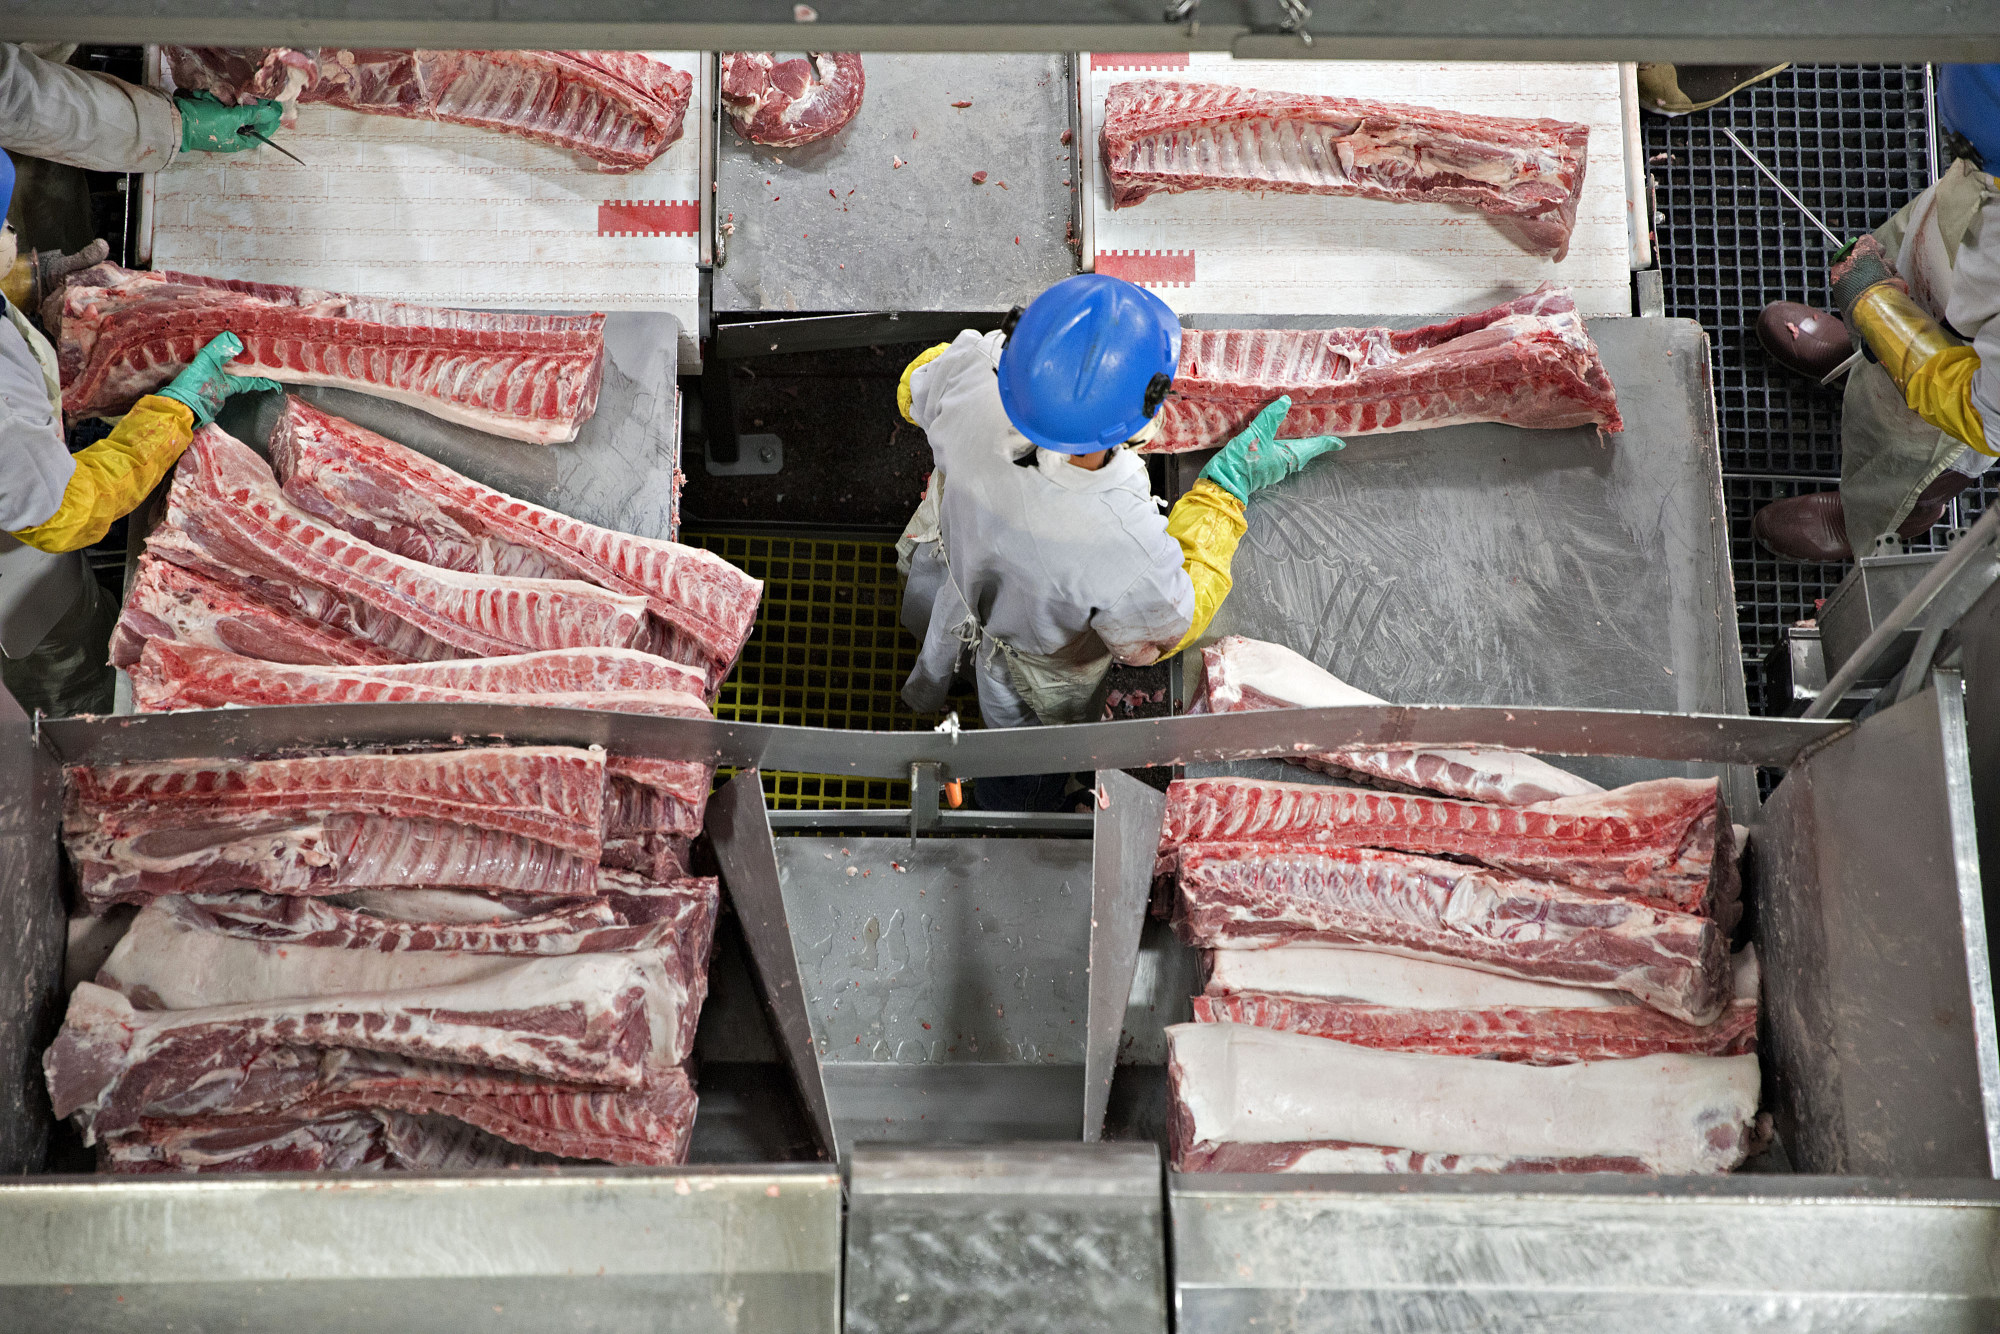 Butchers place pork ribs on a conveyor belt at aprocessing facility in Milan, Missouri, U.S.